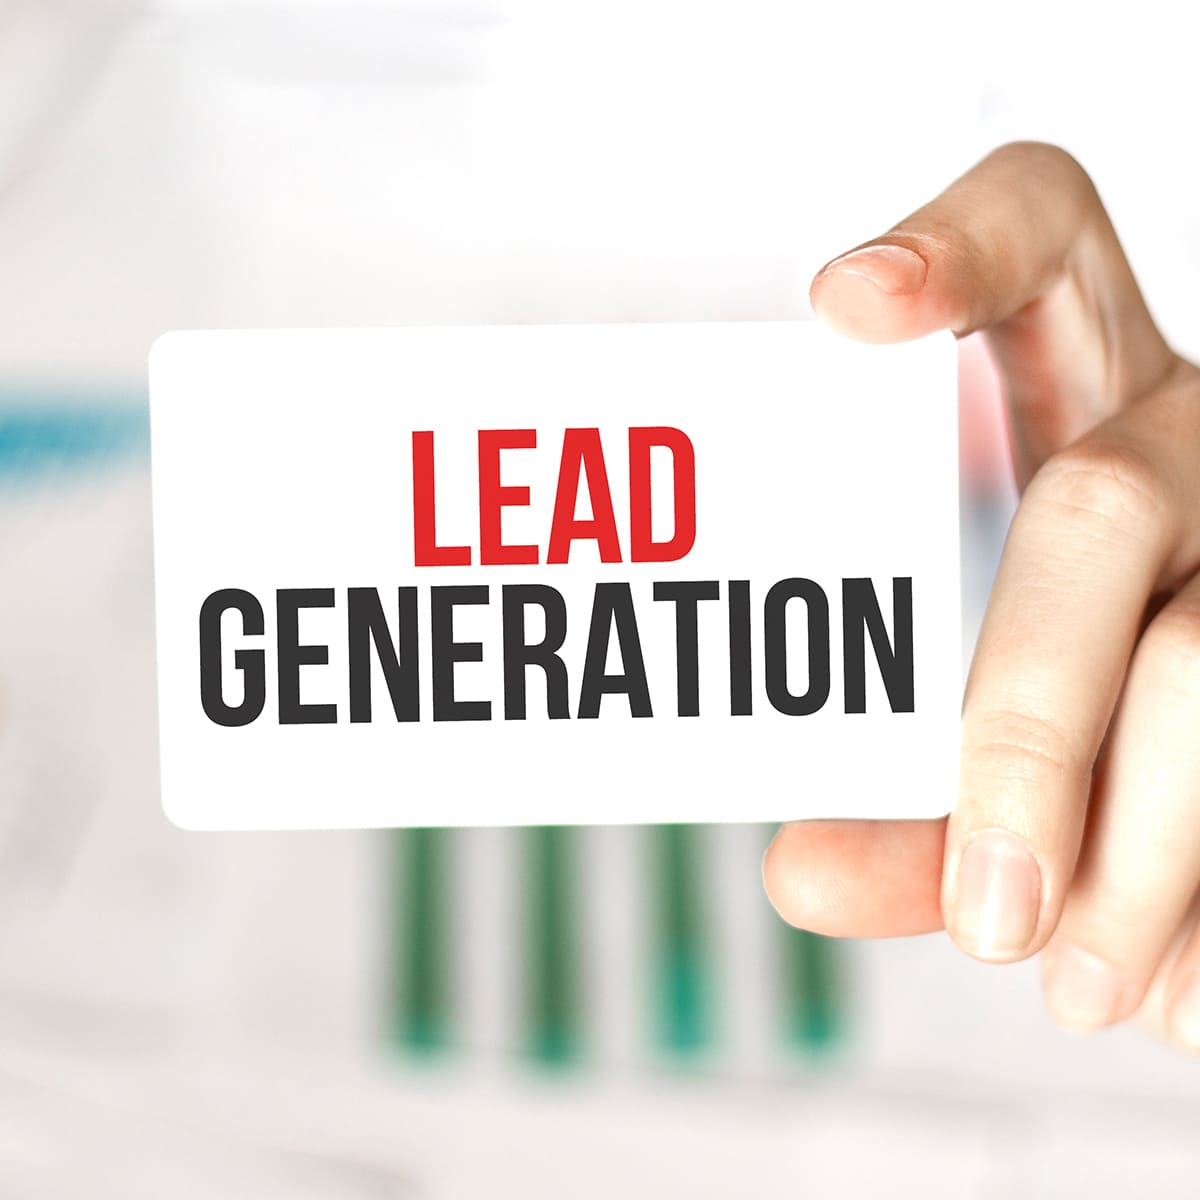 Tips to Increase Sales and Lead Generation